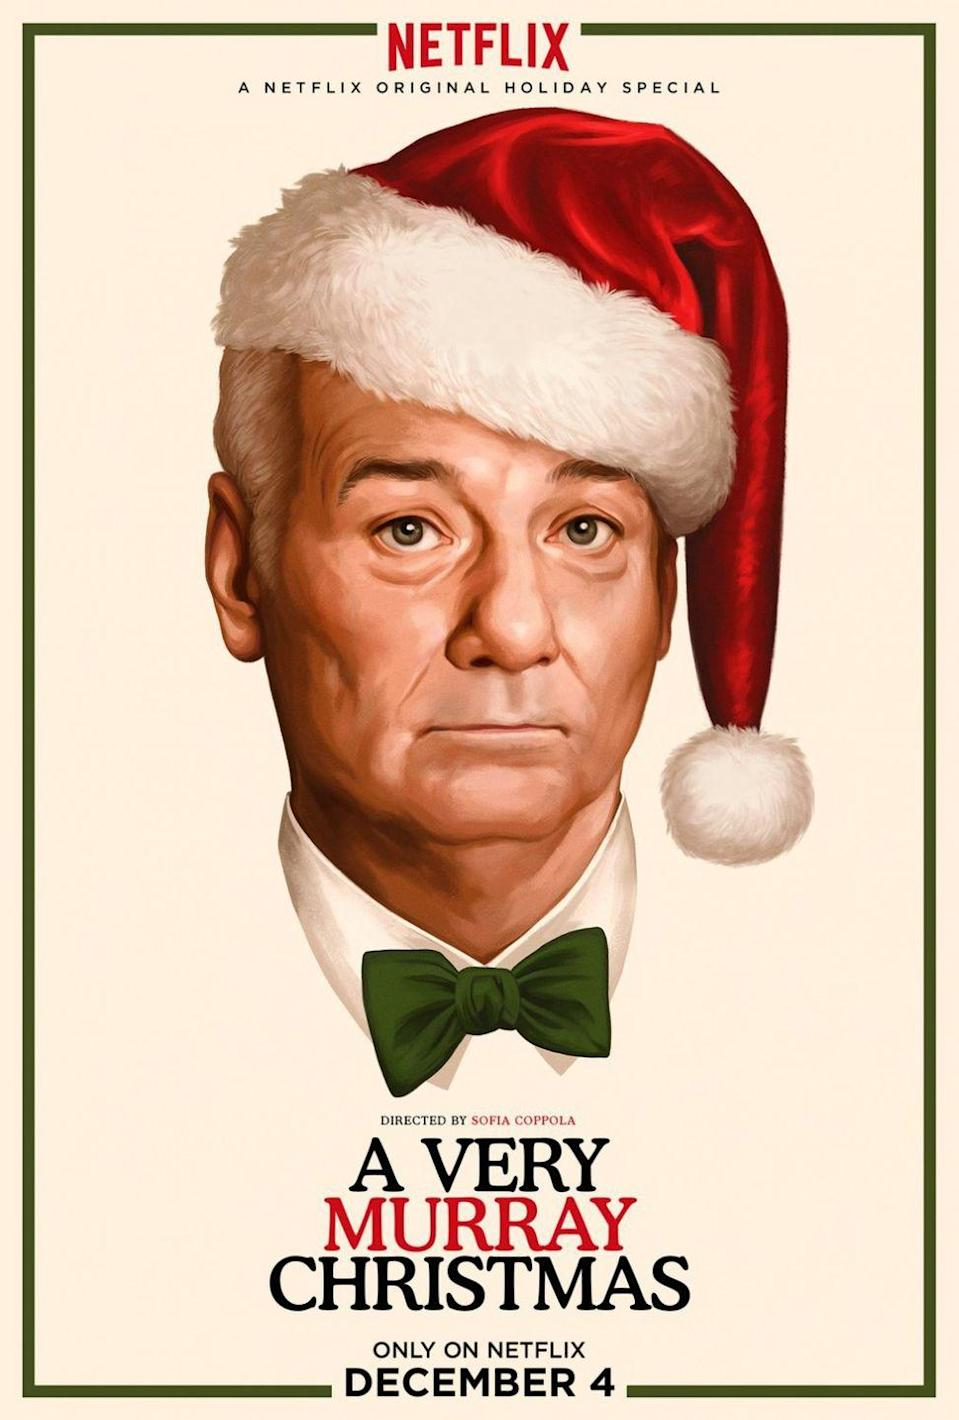 """<p>Bill Murray is joined by Miley Cyrus, Chris Rock, Rashida Jones, George Clooney, and more famous faces for a hilarious twist on the standard Christmas special.</p><p><a class=""""link rapid-noclick-resp"""" href=""""https://www.netflix.com/title/80042368"""" rel=""""nofollow noopener"""" target=""""_blank"""" data-ylk=""""slk:STREAM NOW"""">STREAM NOW</a></p>"""